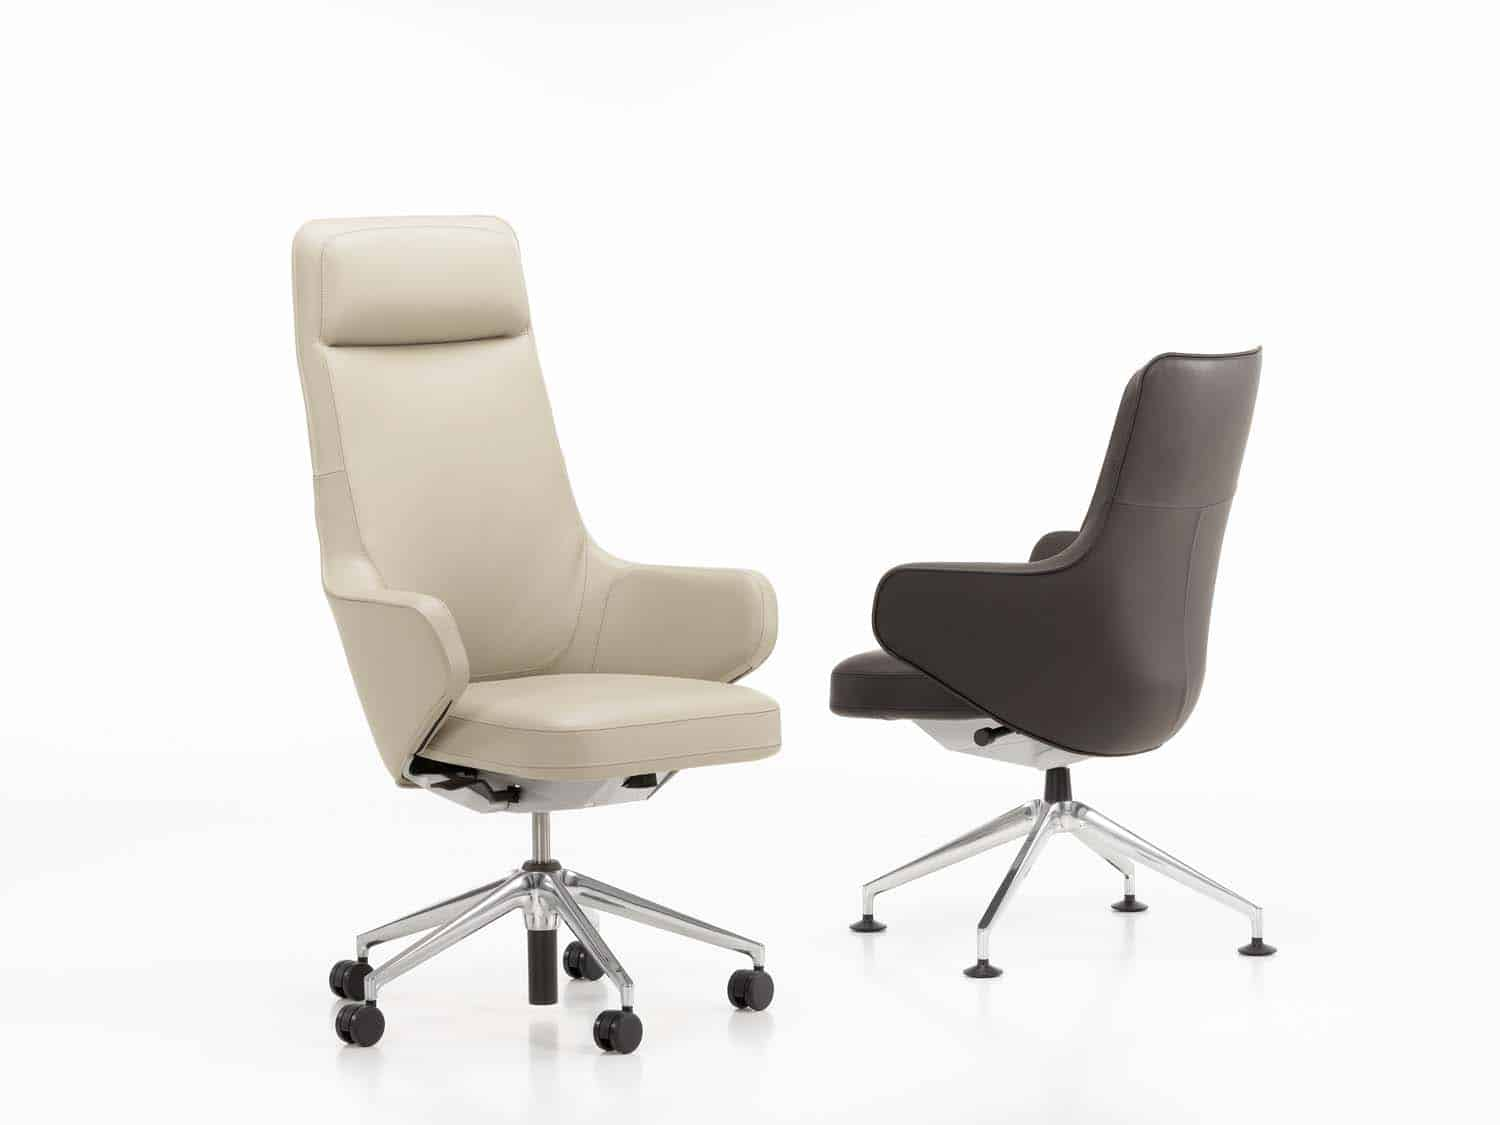 chaise de bureau vitra 2 line office. Black Bedroom Furniture Sets. Home Design Ideas